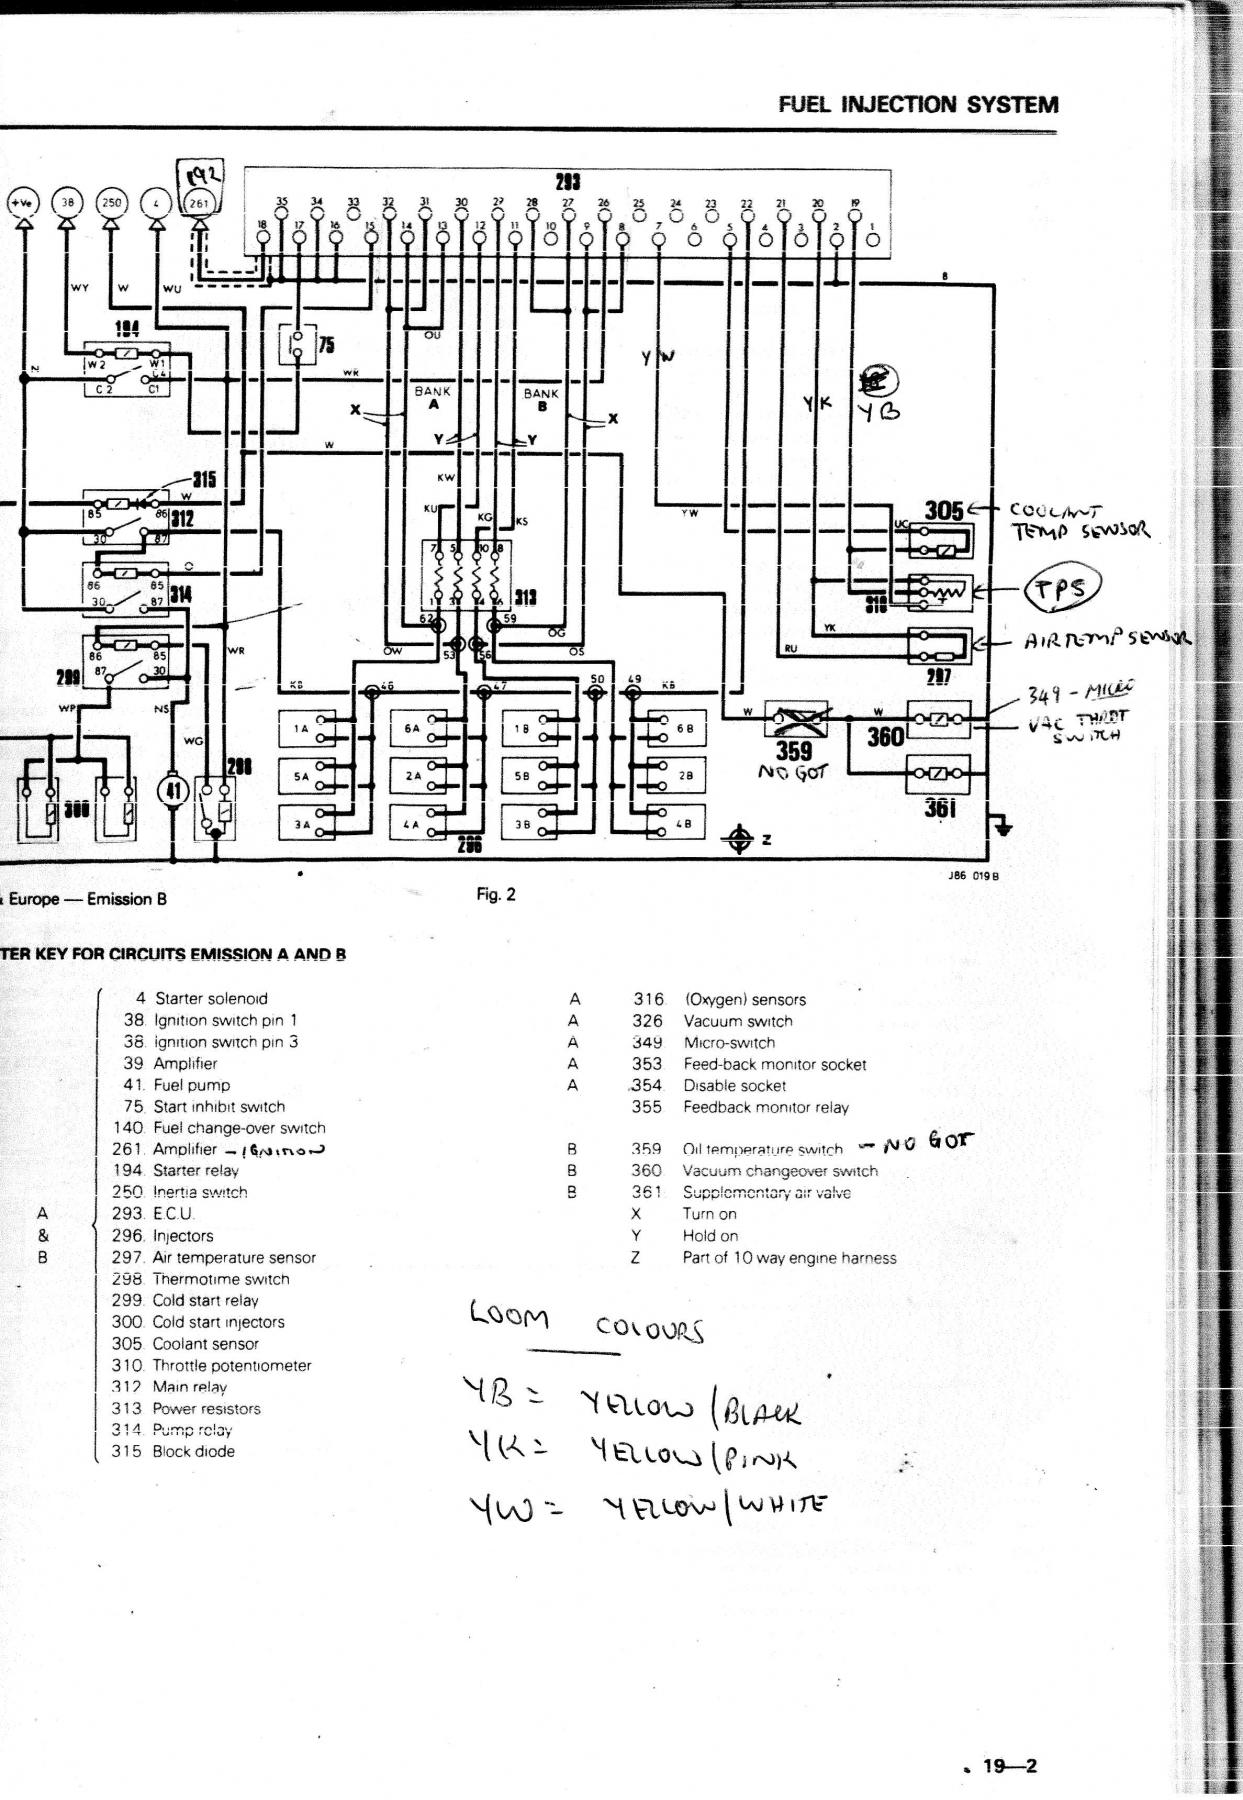 2001 jaguar s type fuel pump wiring diagram for ring main just stopped running page 3 forums